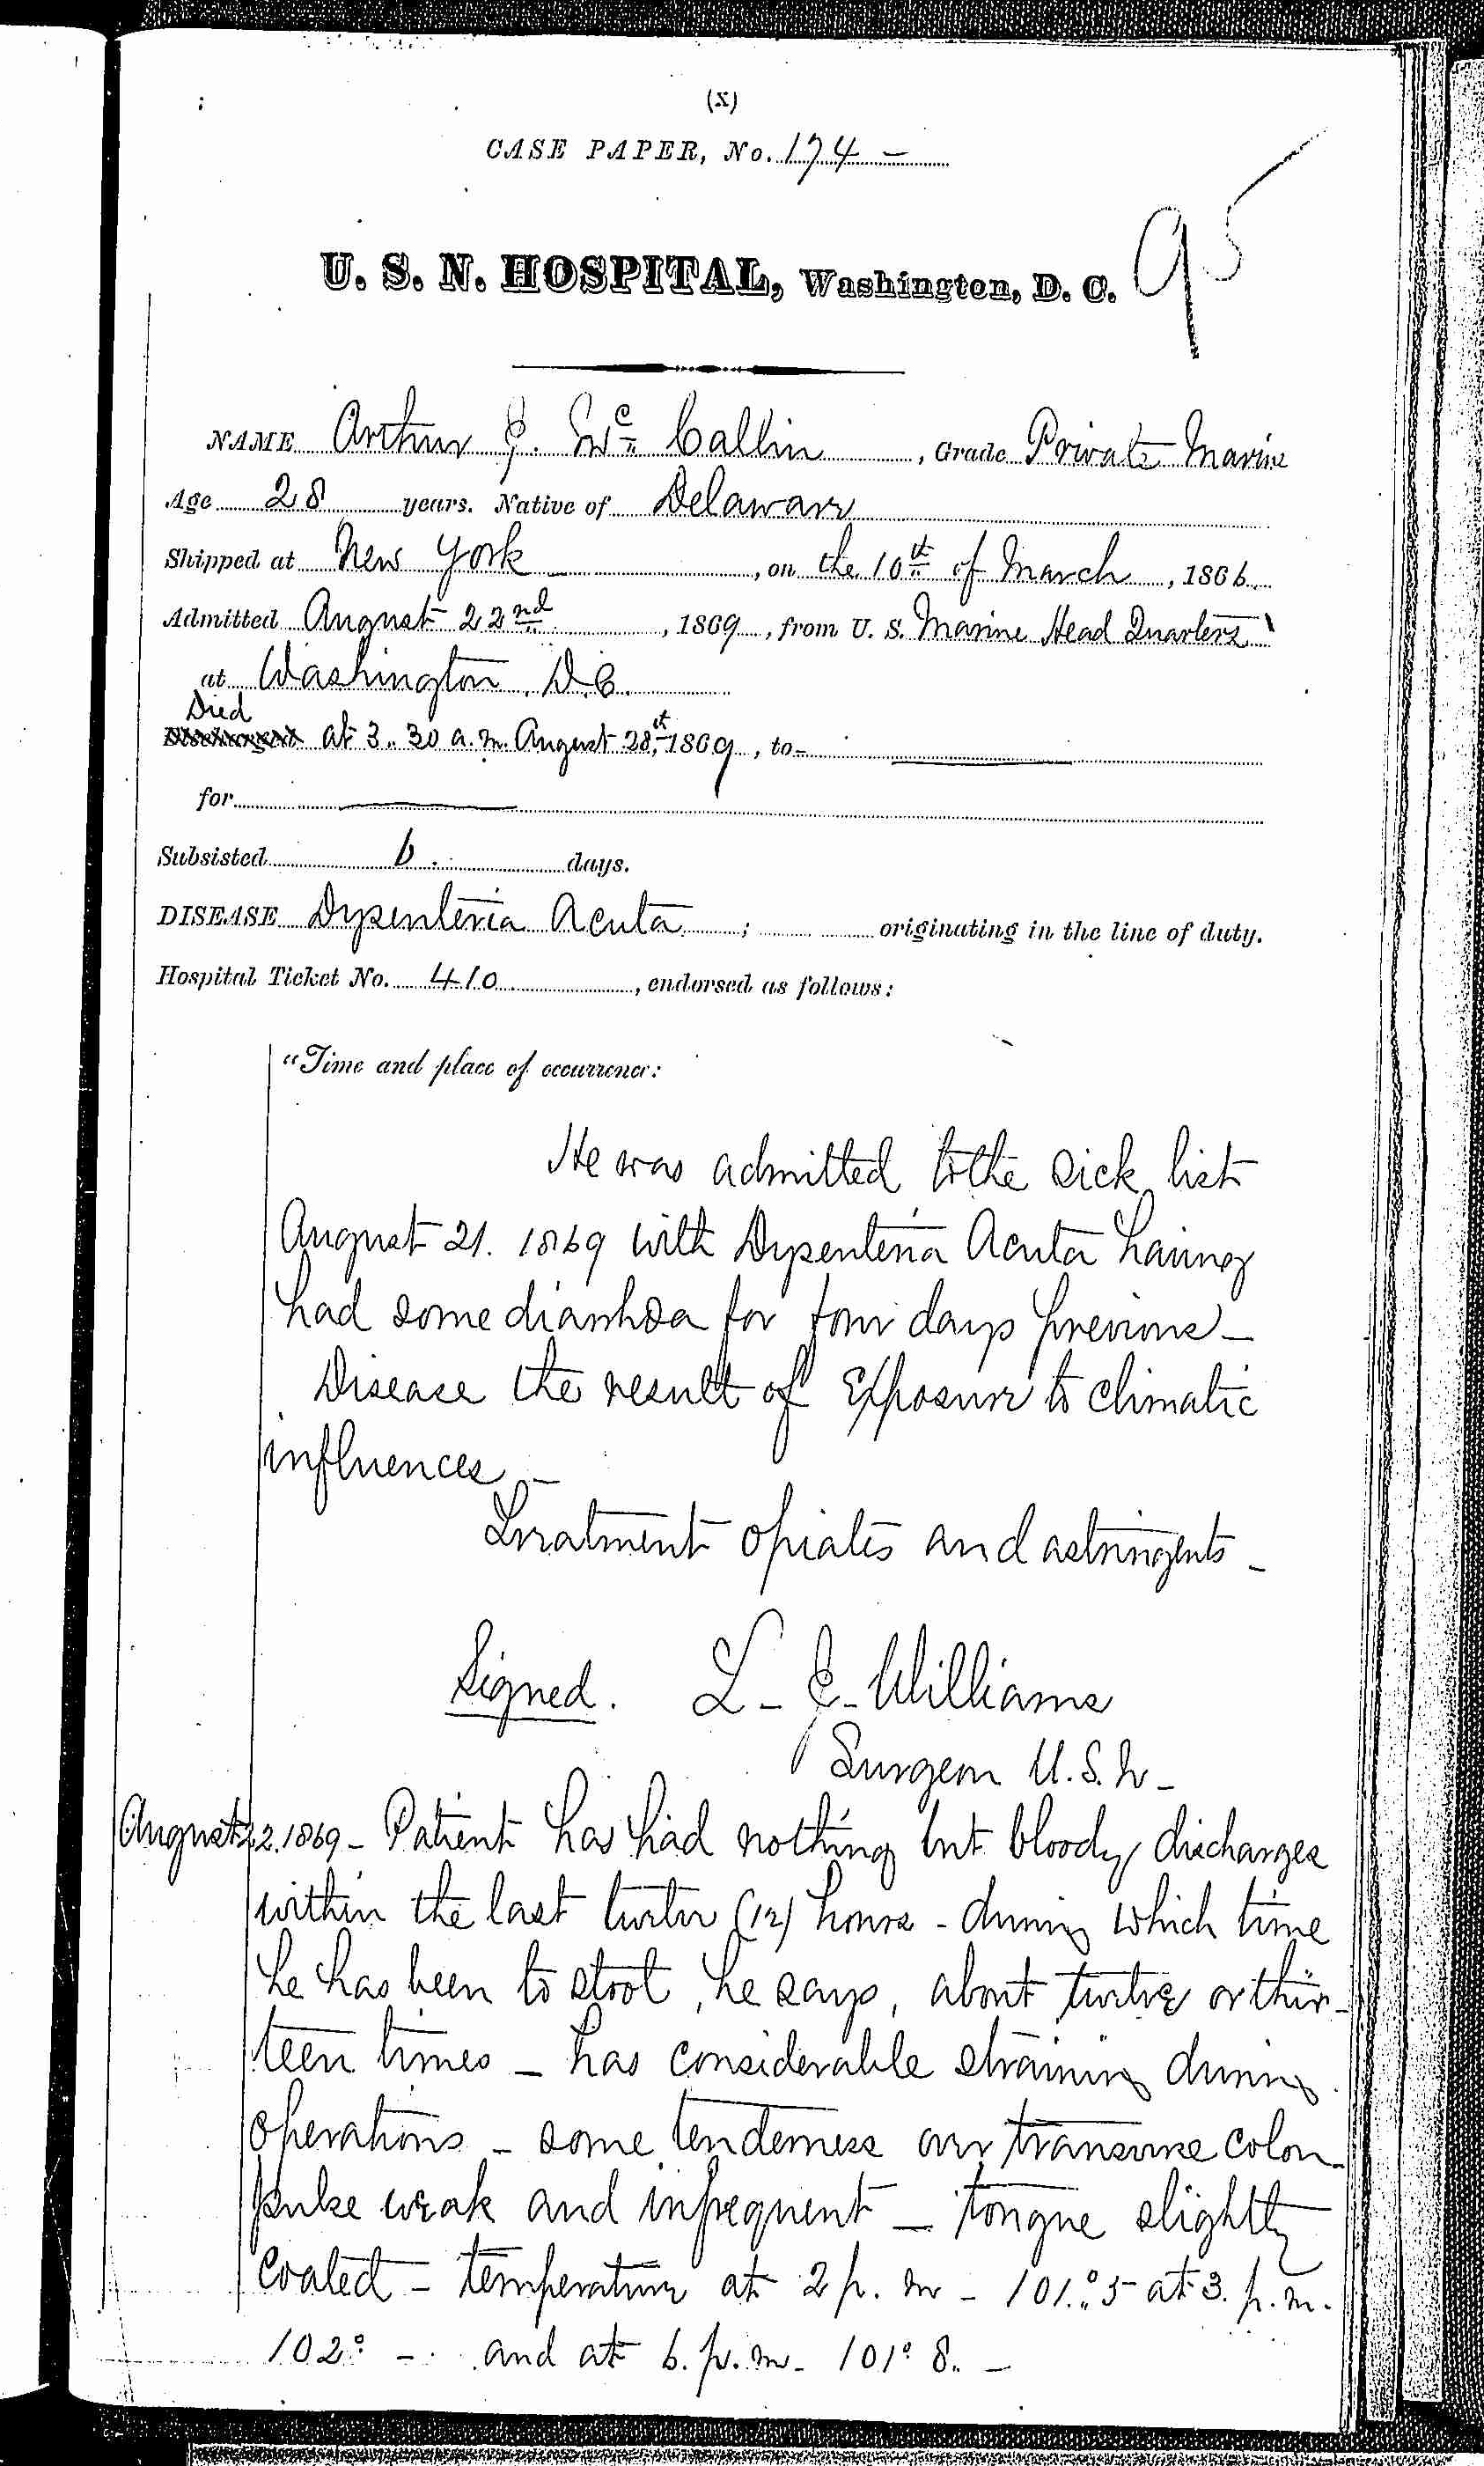 Entry for Arthur J. McCallan (page 1 of 5) in the log Hospital Tickets and Case Papers - Naval Hospital - Washington, D.C. - 1868-69